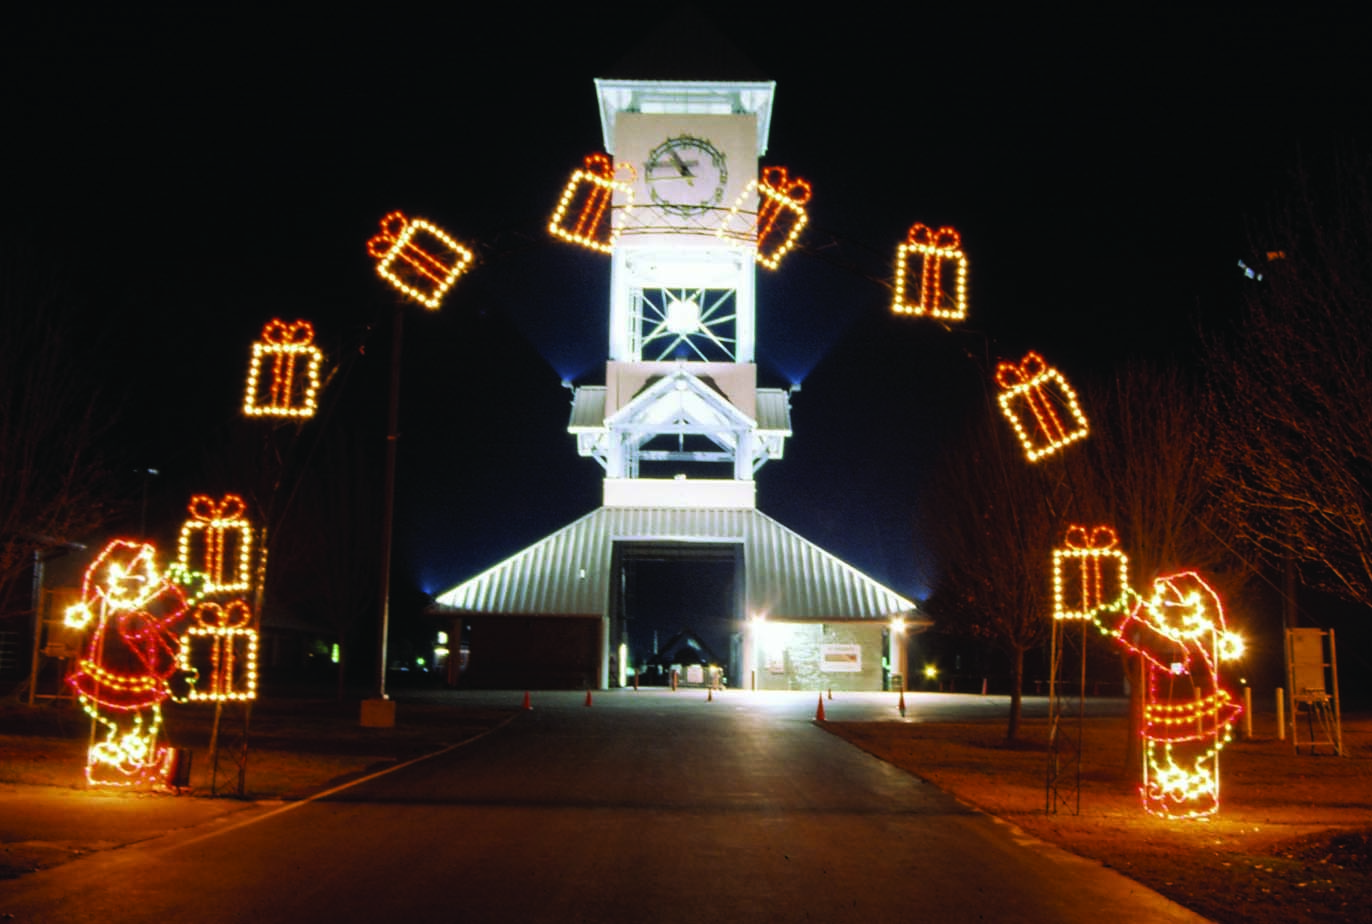 Lighted arch outdoor Christmas decorations illustrated on the Holiday Designs Christmas decorations web site are ready to install.